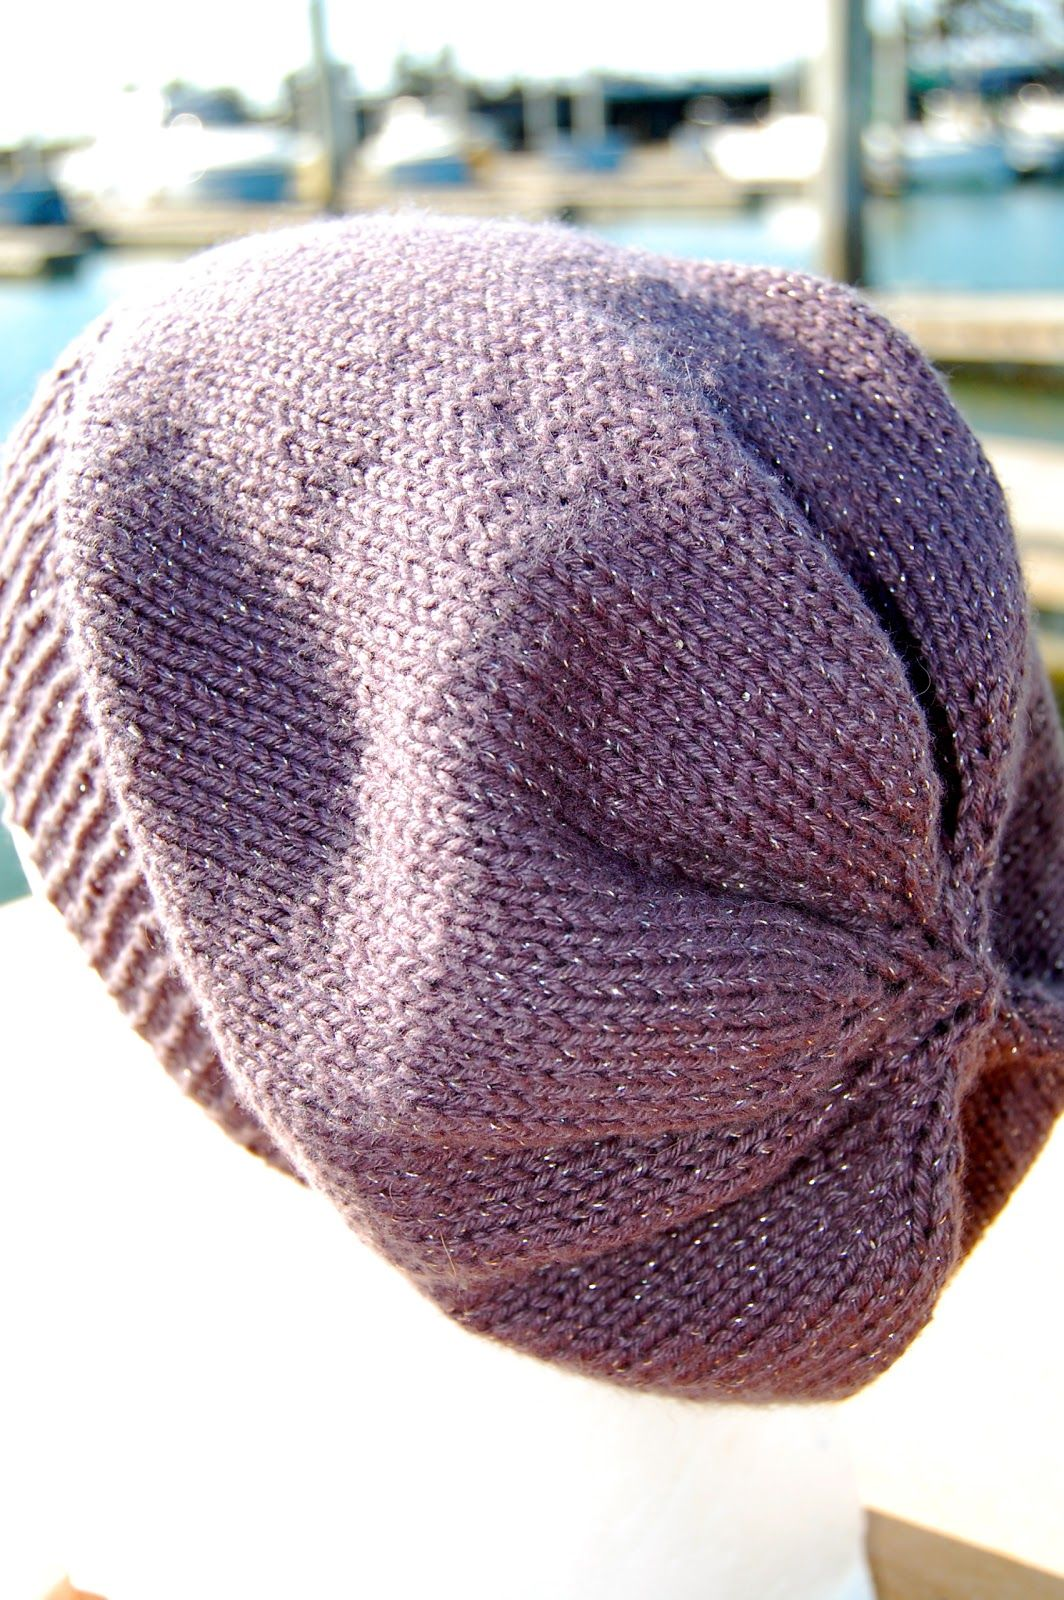 Super simple slouchy beanie bistitchual knitting pinterest find this pin and more on knitting super simple slouchy beanie free knitting pattern bankloansurffo Image collections